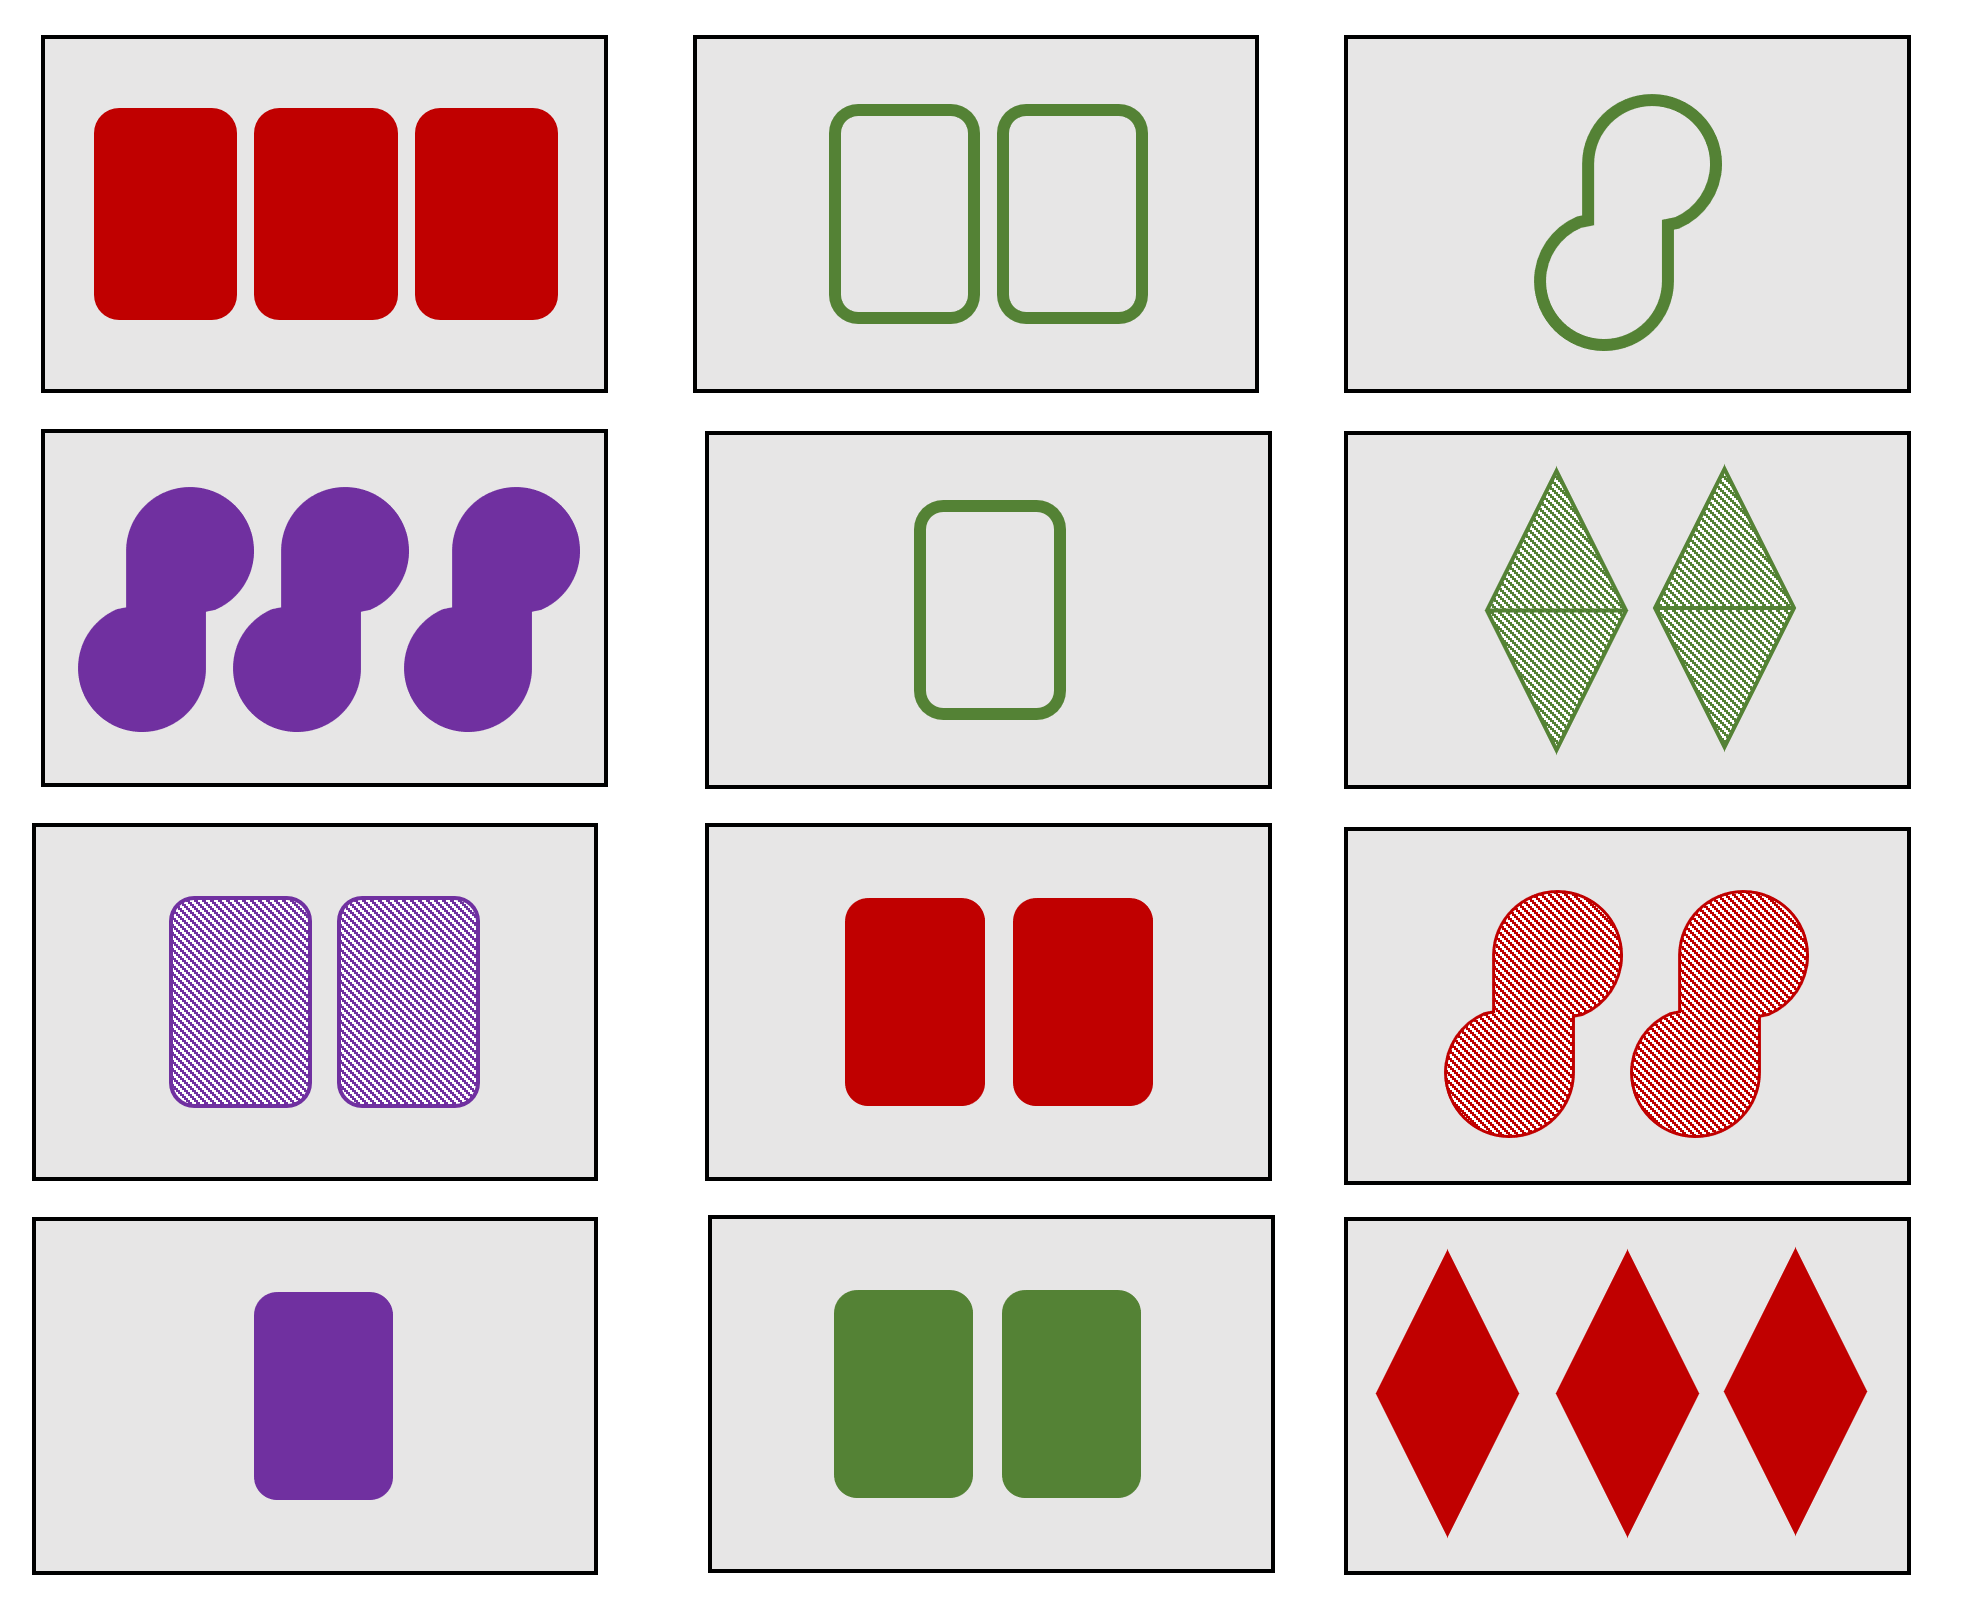 An example layout of the 12 cards. There are 4 possible sets here — can you find them all?